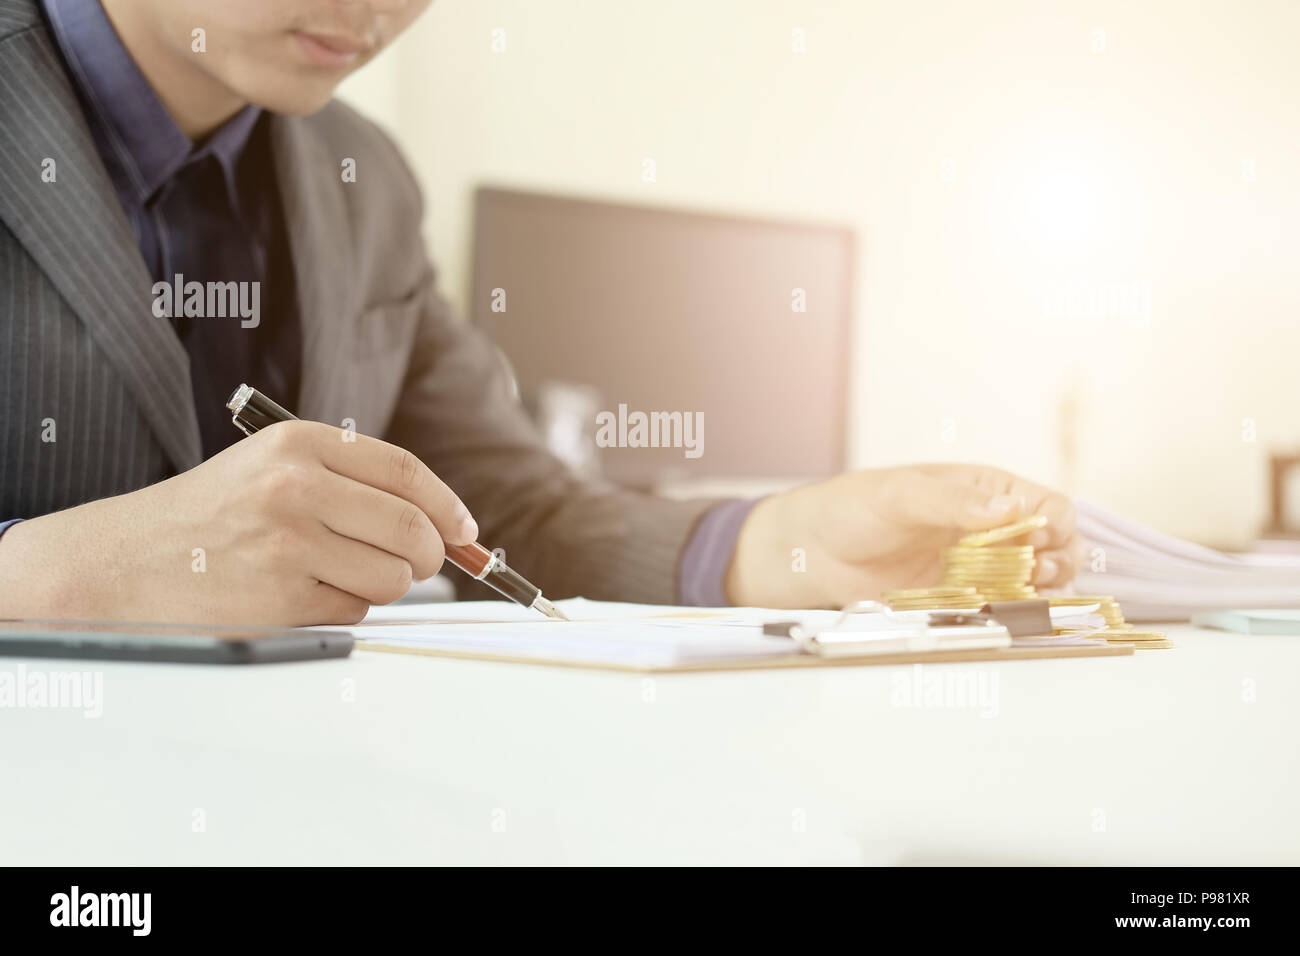 Man working on spreadsheet document financial data,Certified public accountant. - Stock Image